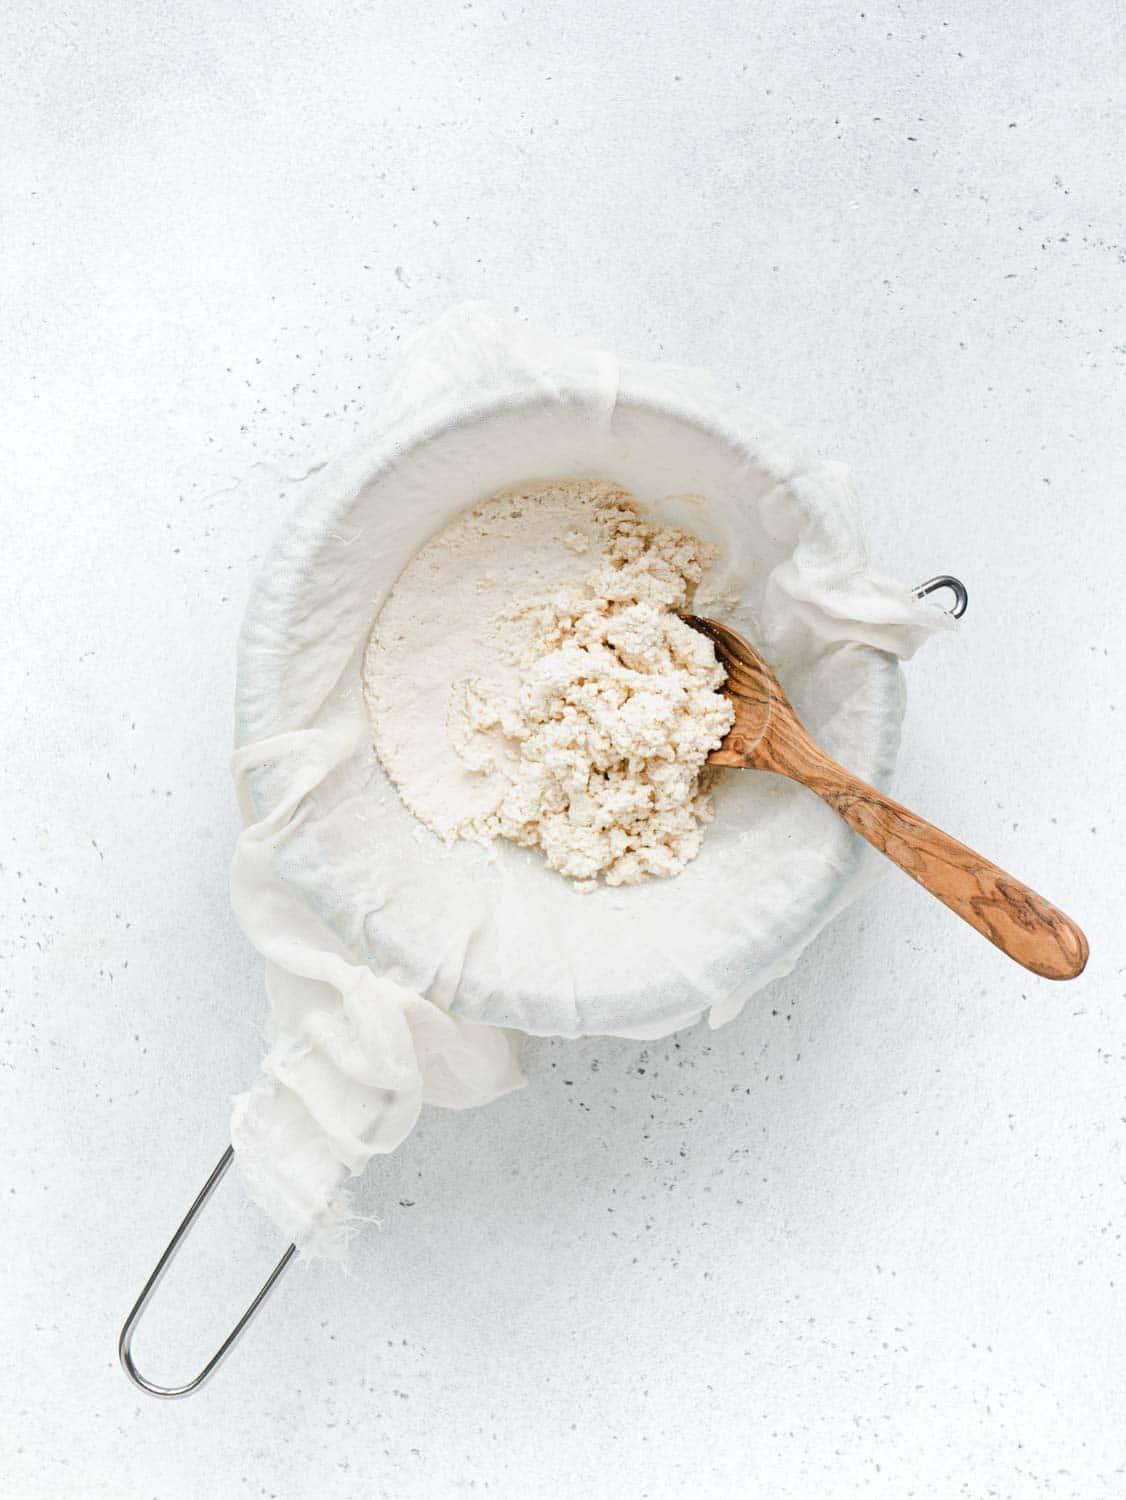 Drained homemade vegan ricotta with soy milk to use for the vegan cannoli recipe